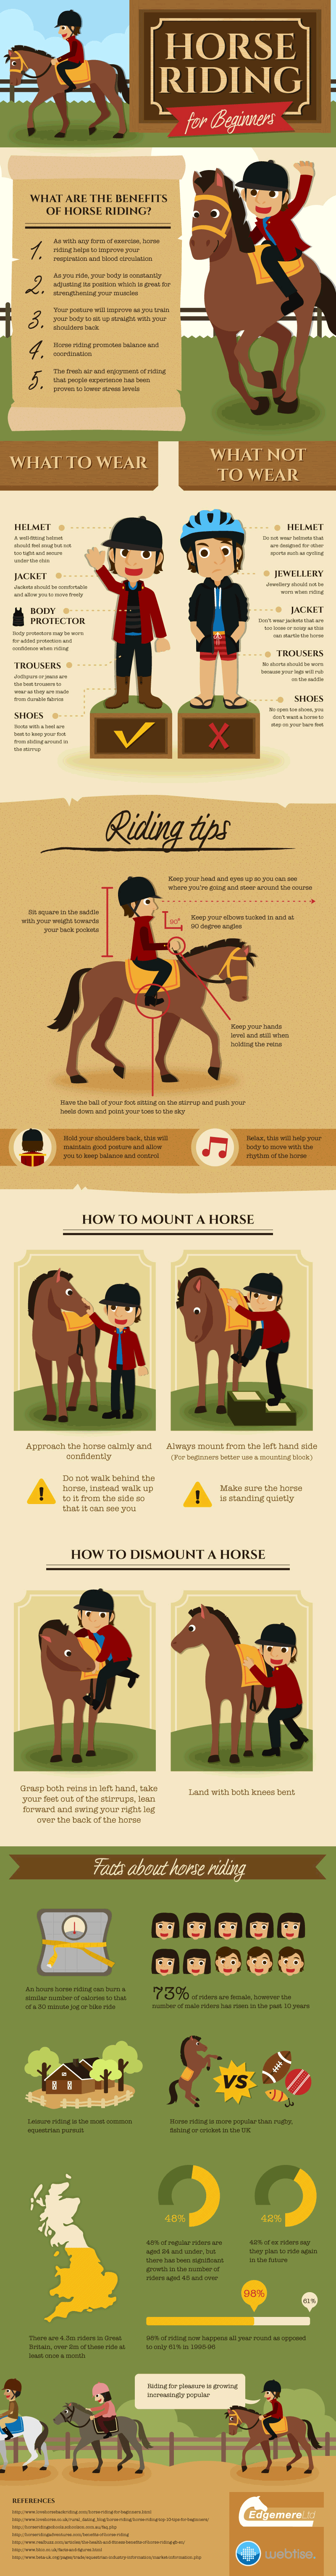 This infographic tells you a lot that you need to know as a new rider. Find out the correct riding position, how to mount and dismount a horse, etc.